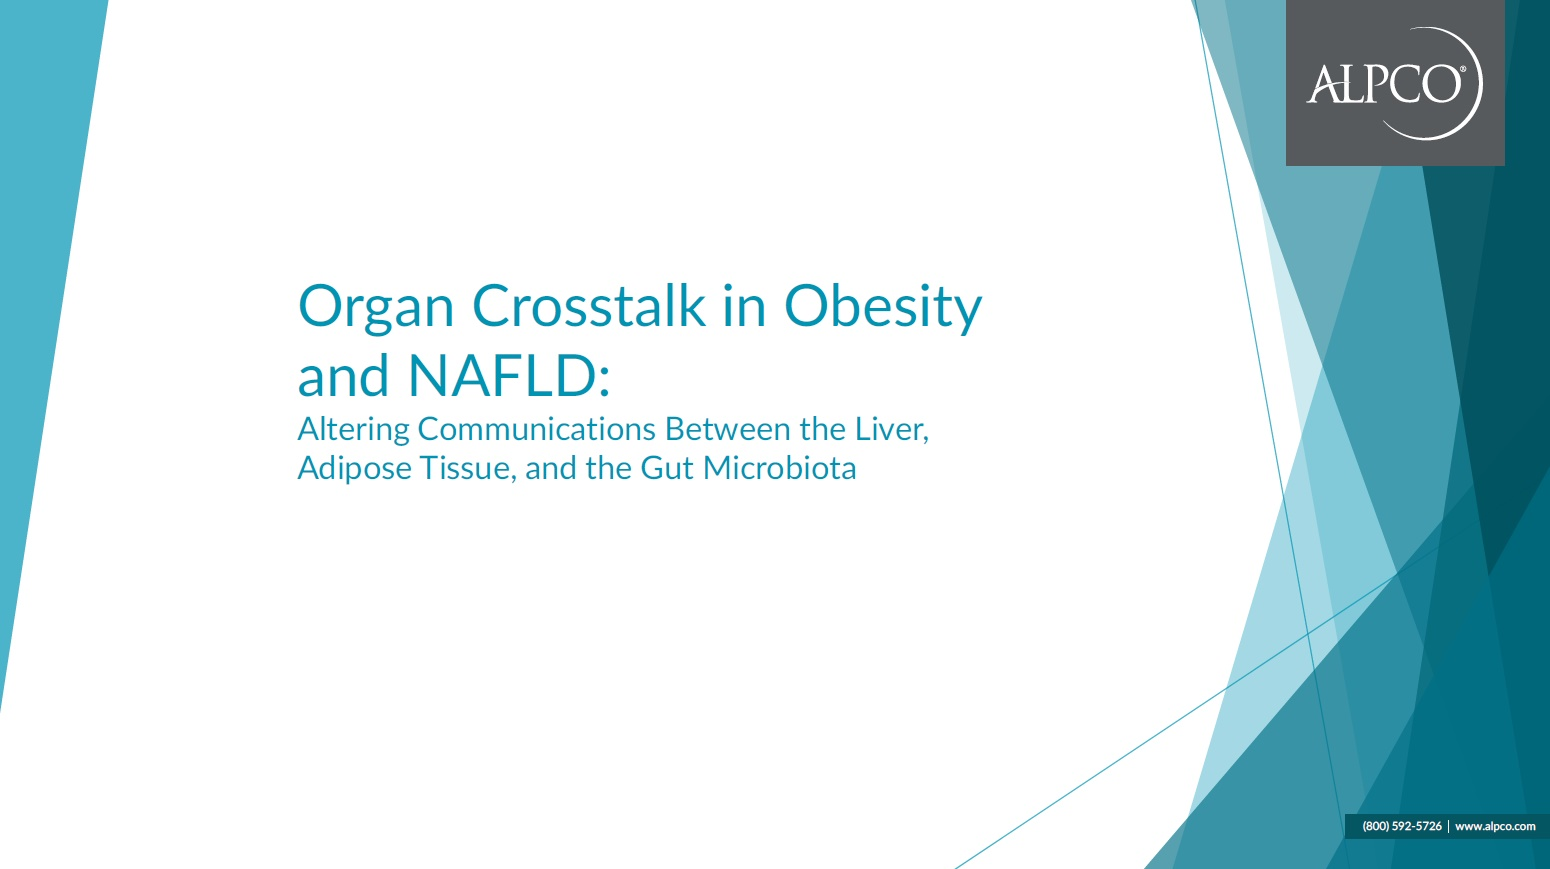 A thumbnail preview of the ebook Organ Crosstalk in Obesity and NAFLD.